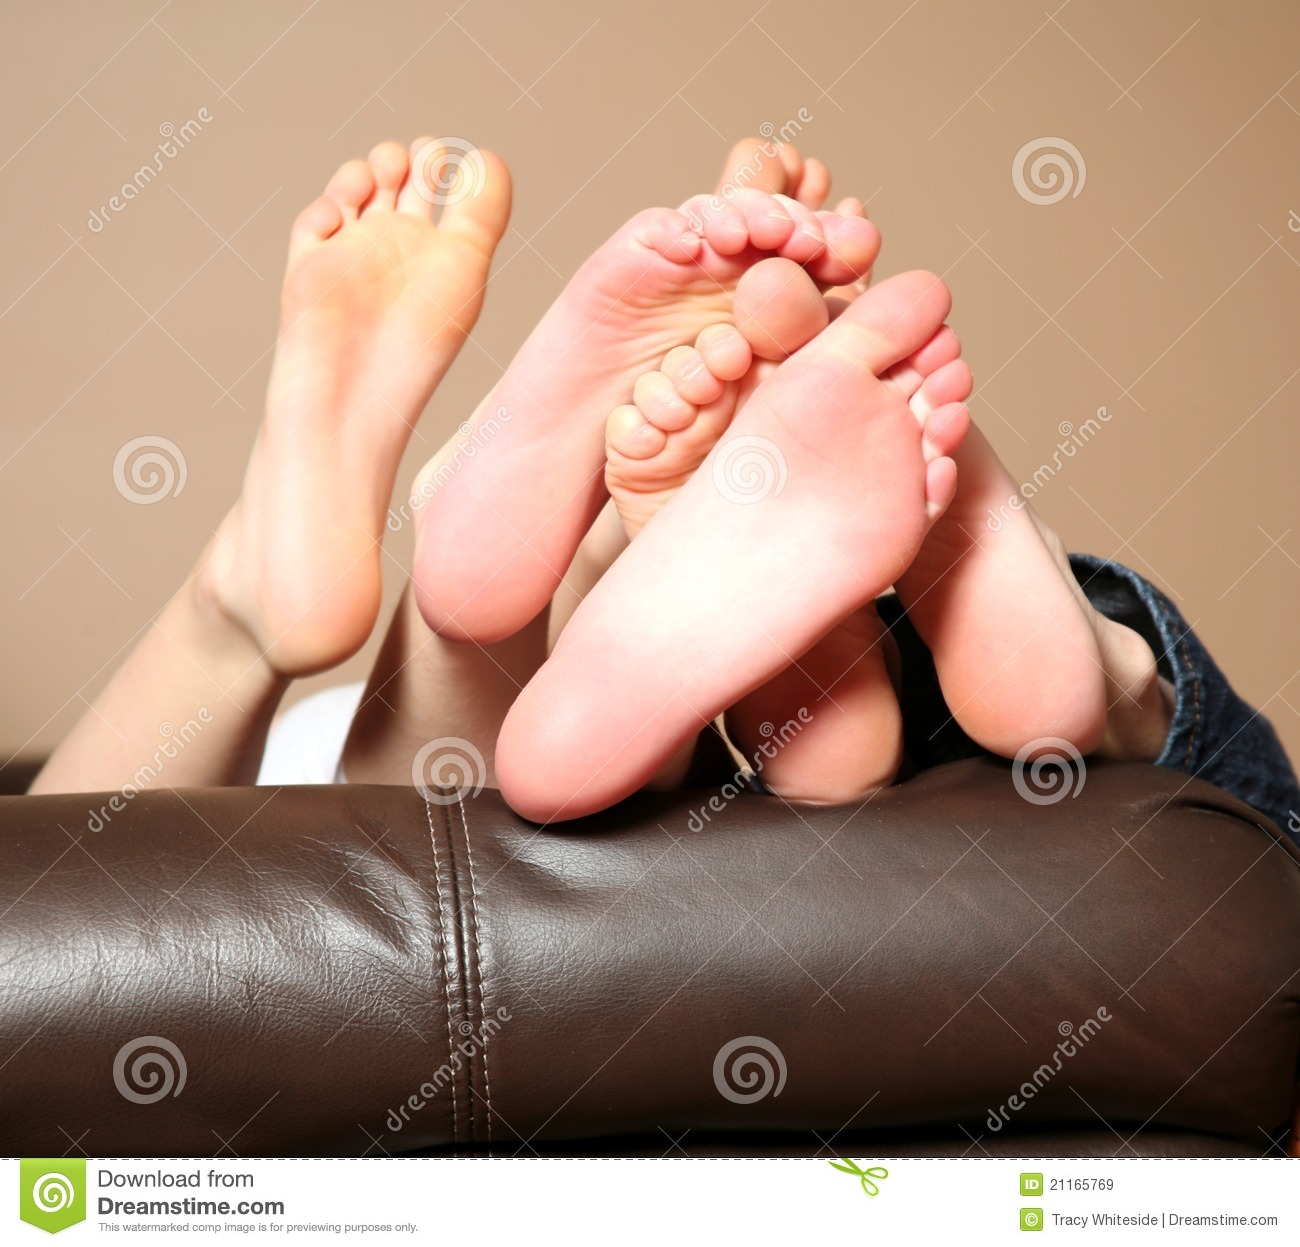 Three pairs of kids feet showing the soles.